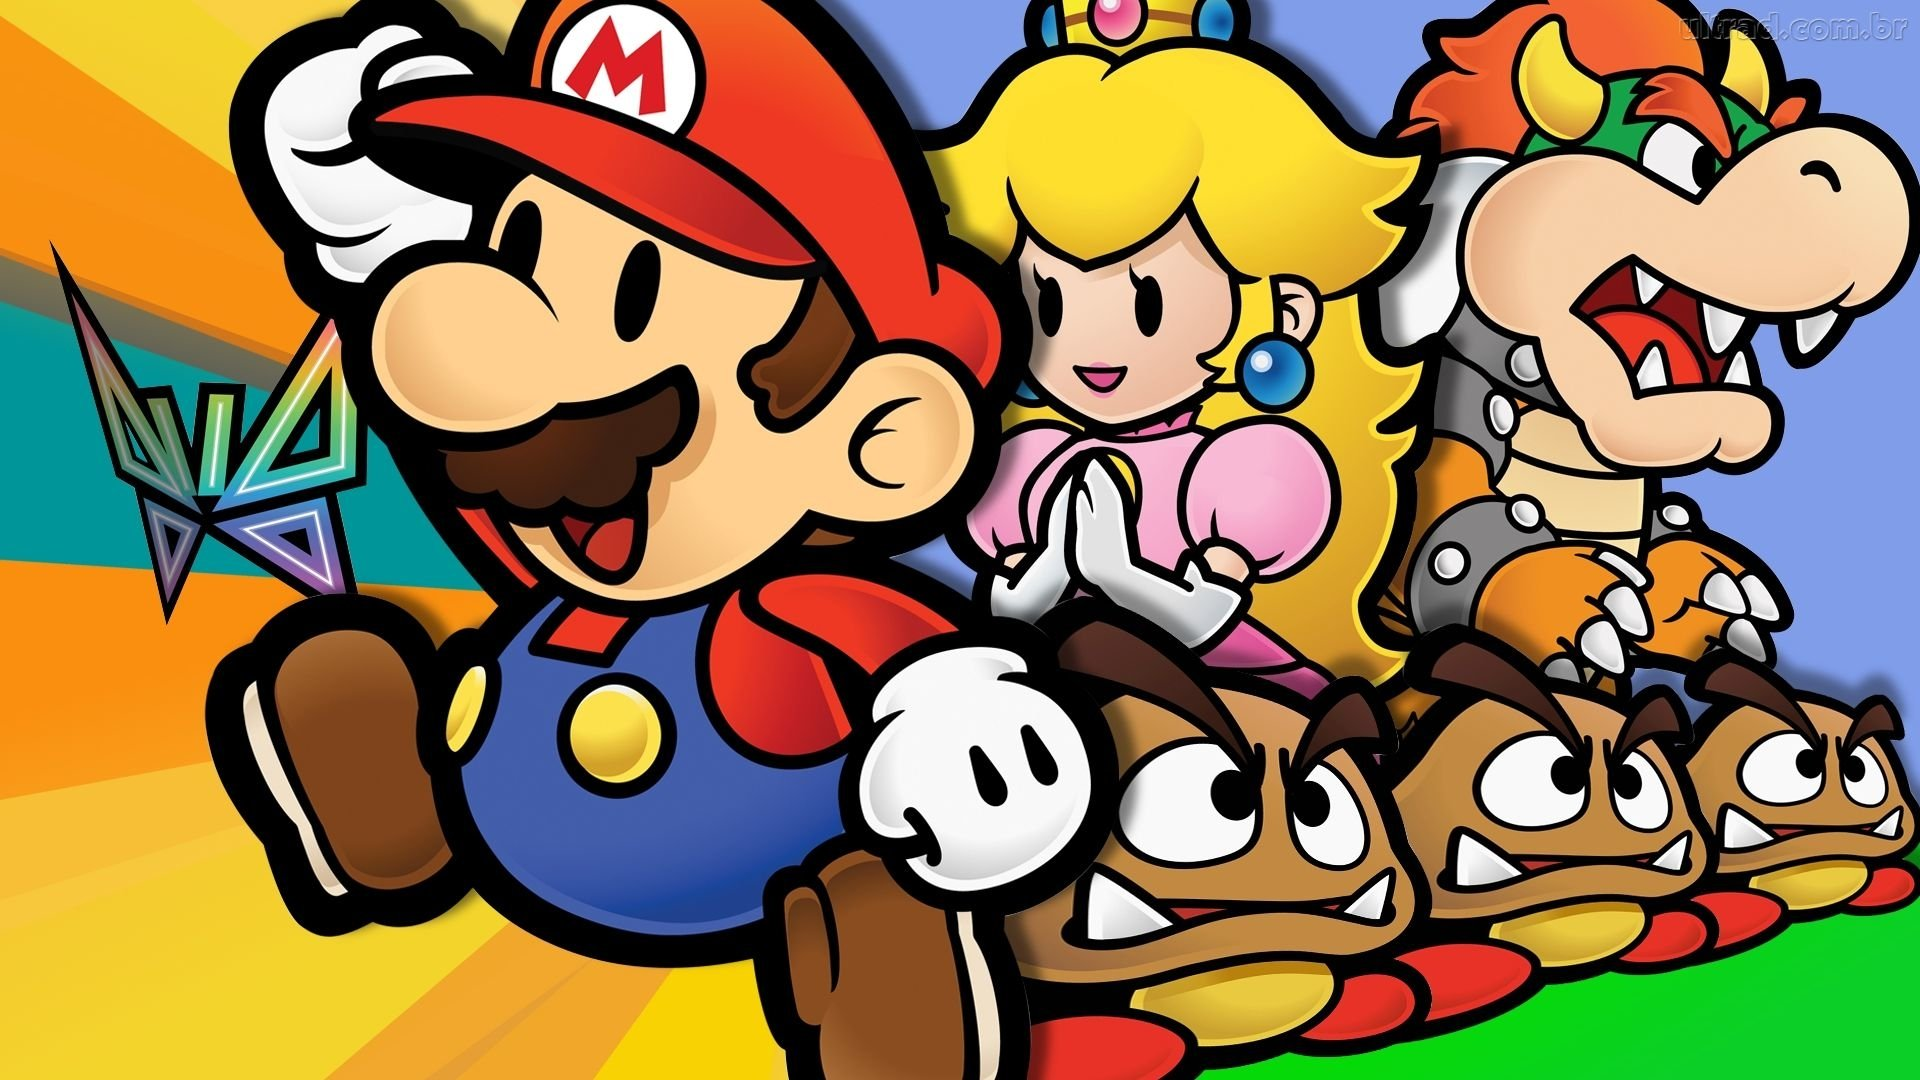 Video Game - Paper Mario: The Thousand-Year Door  Princess Peach Bowser Goomba Wallpaper